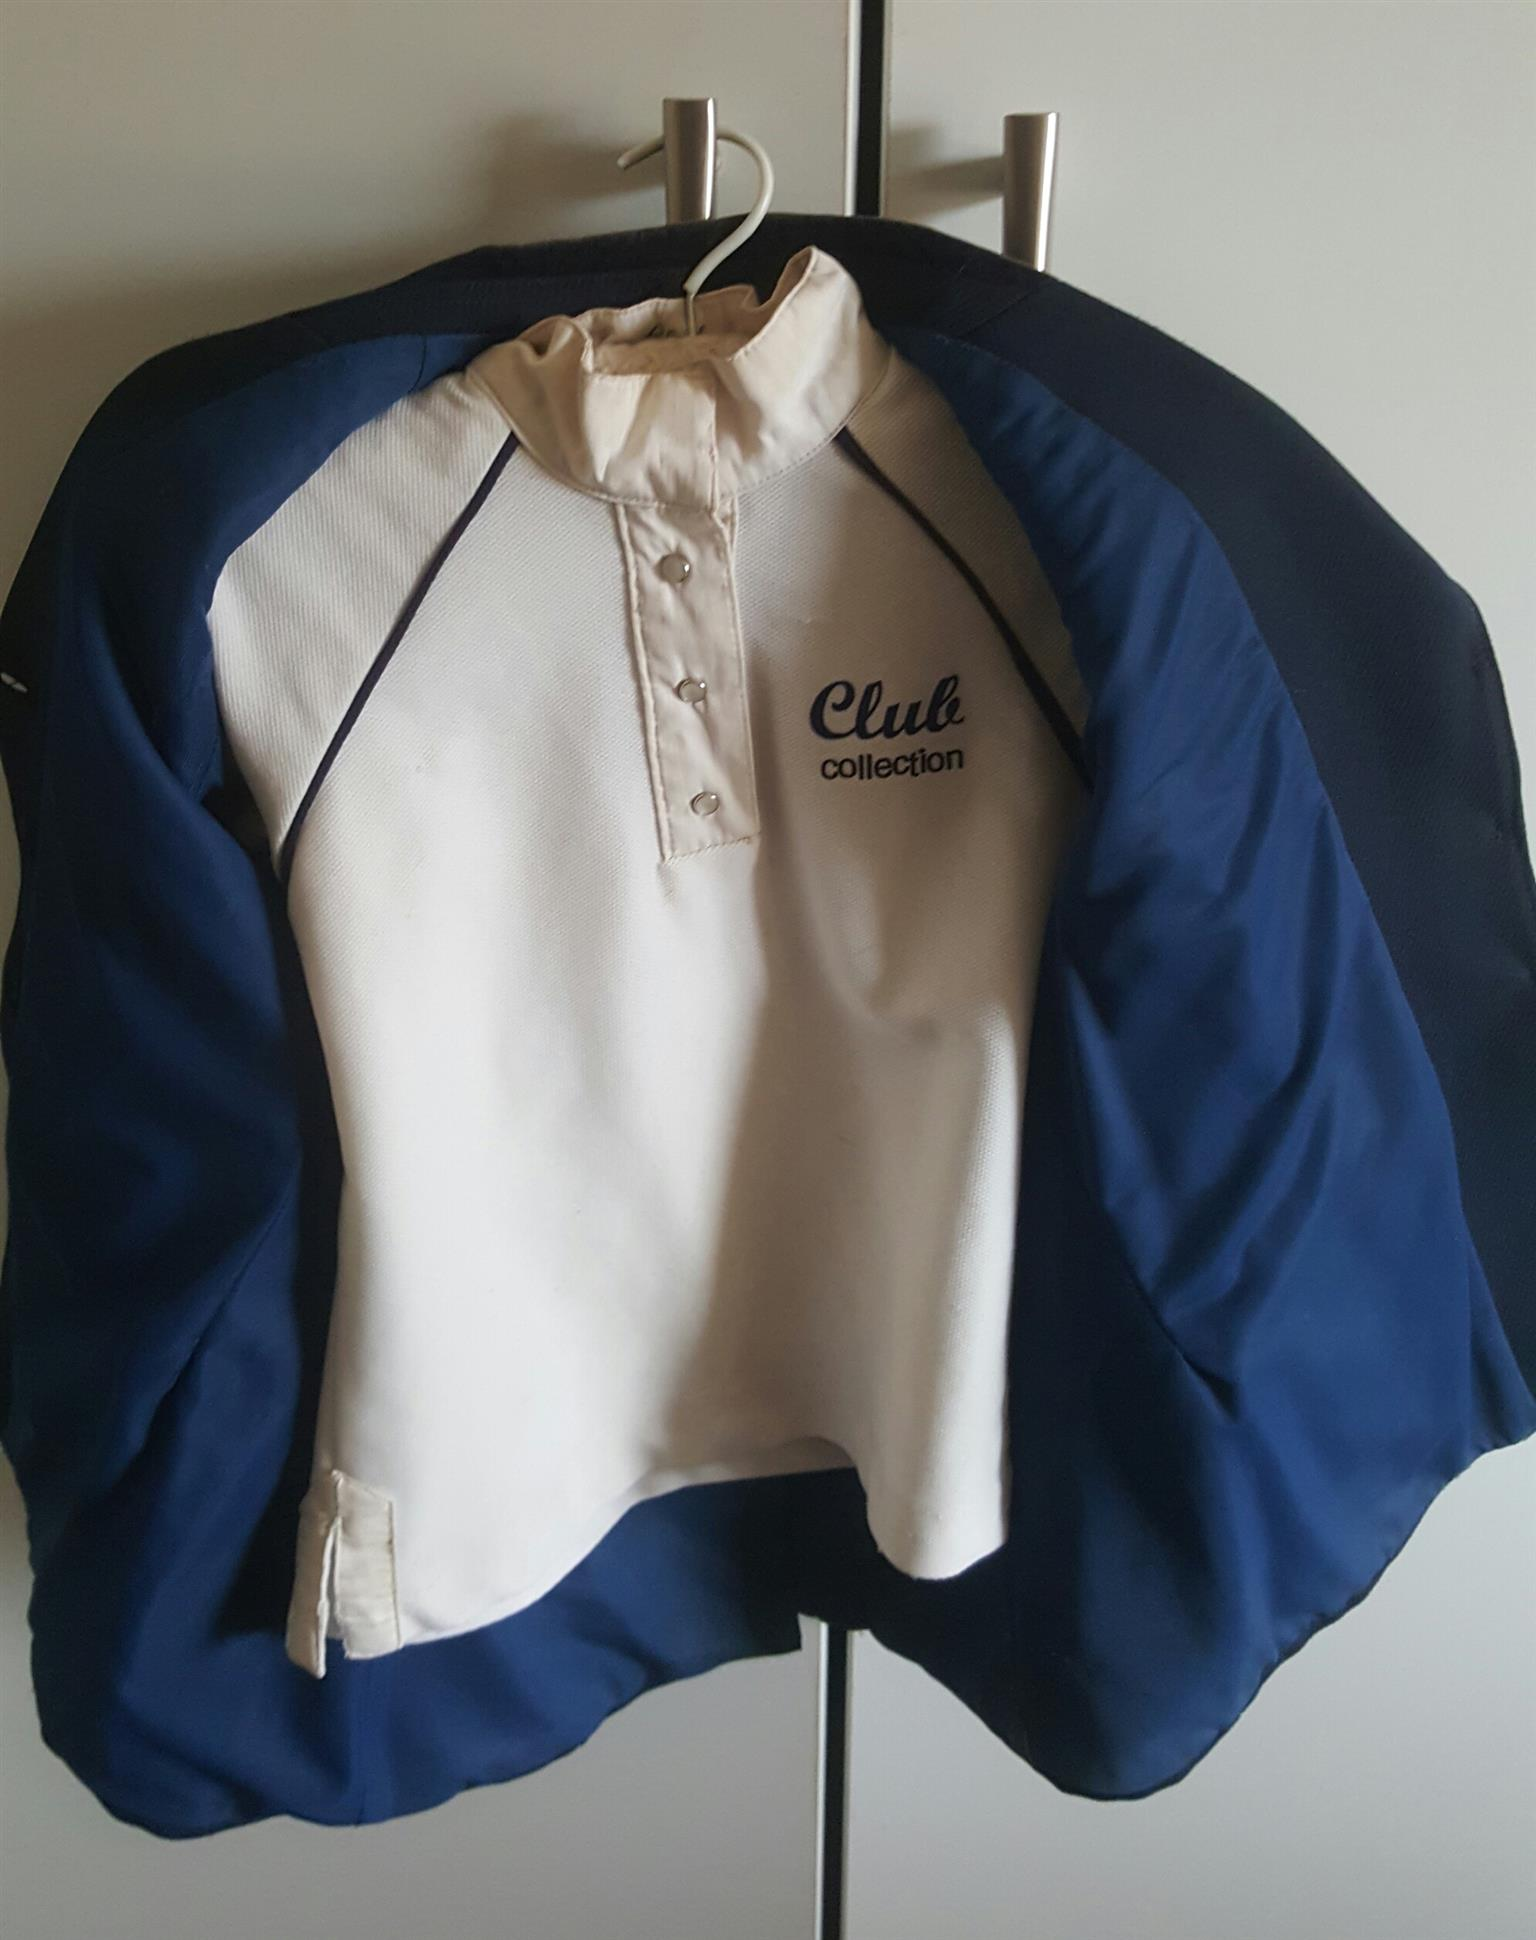 Kids navy show jacket and show shirt